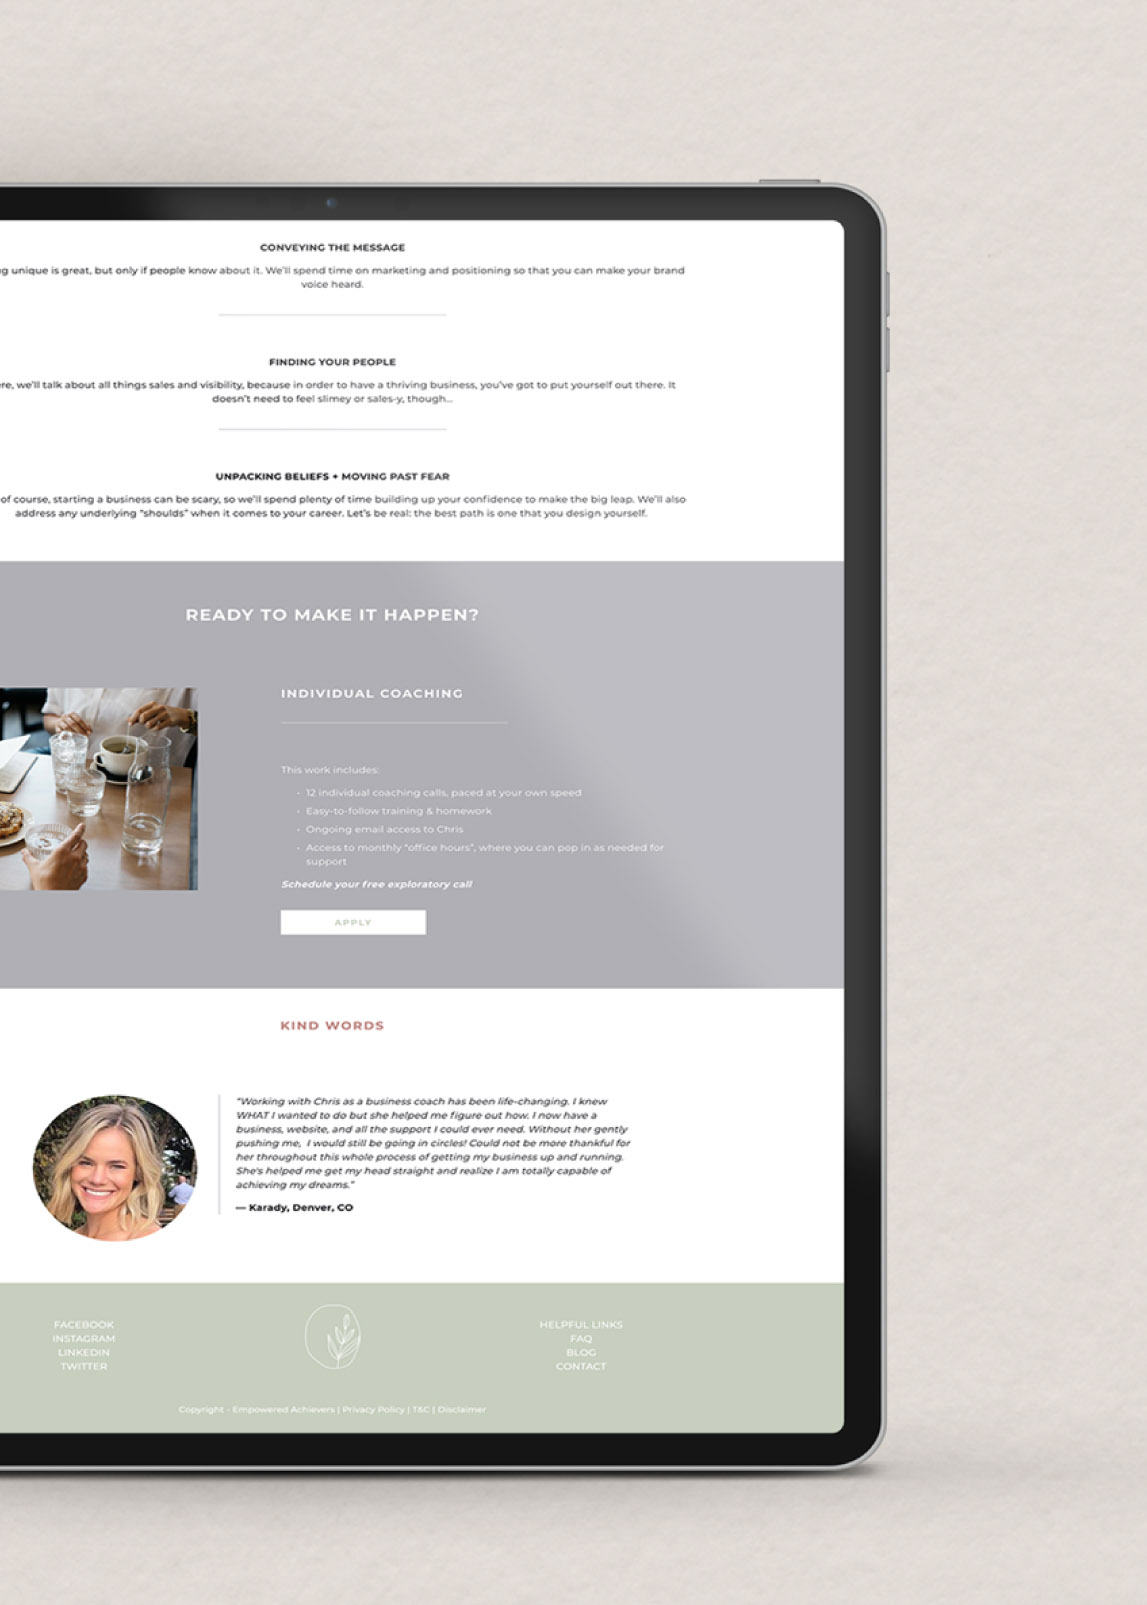 Custom Squarespace Website Design for Coaches and Millennial Coaches.jpg